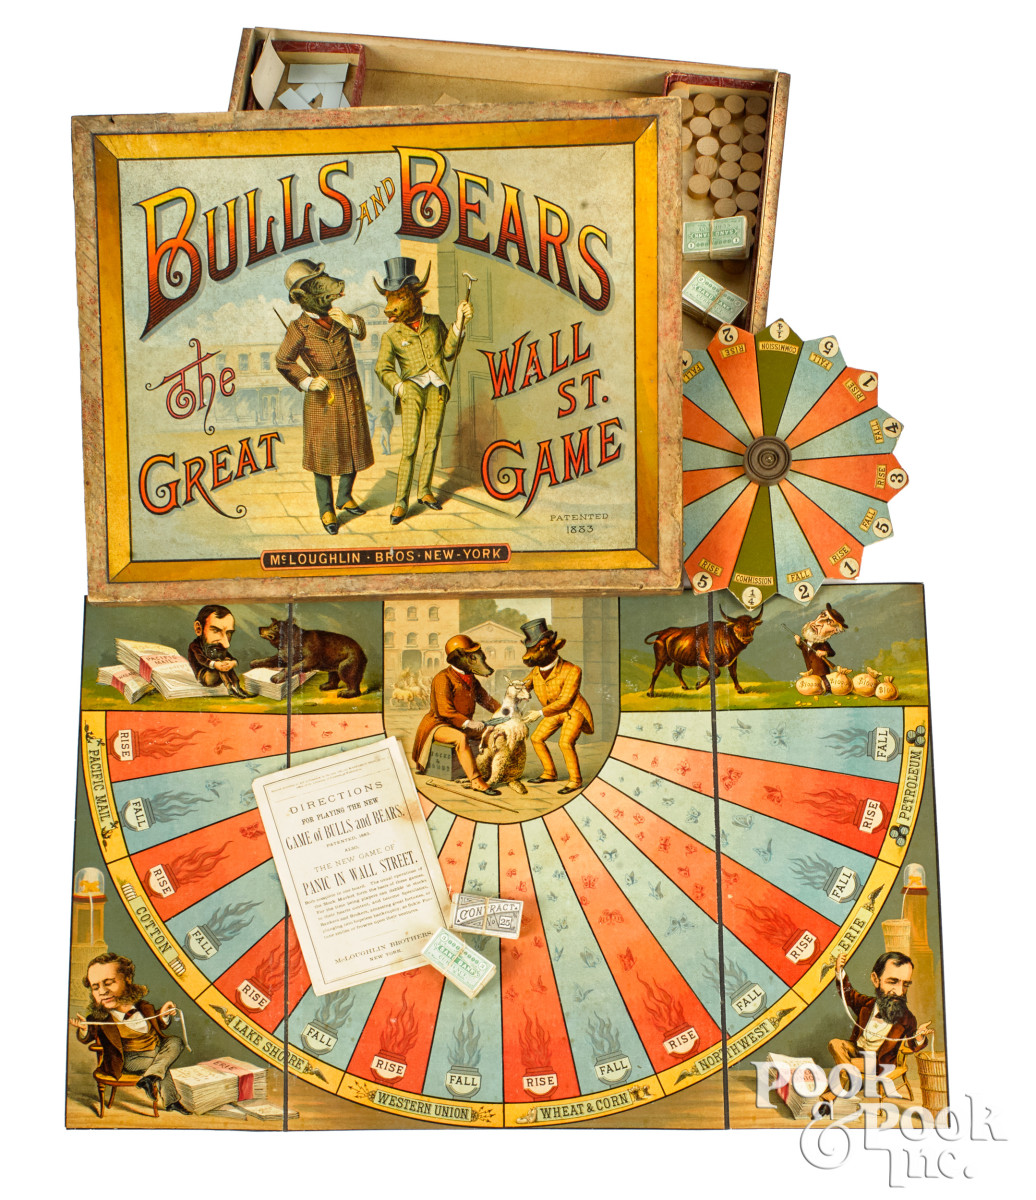 McLoughlin Bros. Bulls and Bears - The Great Wall St. Game, pat. 1883, the most desirable of games, with vibrant lithographed lid and imagery of a finely dressed bull and bear standing on Wall Street. Fold-out gameboard with comic portrait vignettes of gilded age stock market personalities -Jay Gould, Cornelius Vanderbilt and Cyrus Field, includes a large spinning board, play money, as well as original instruction booklet, box is 12'' x 15-1/4''. Estimate: $12,000-$16,000.